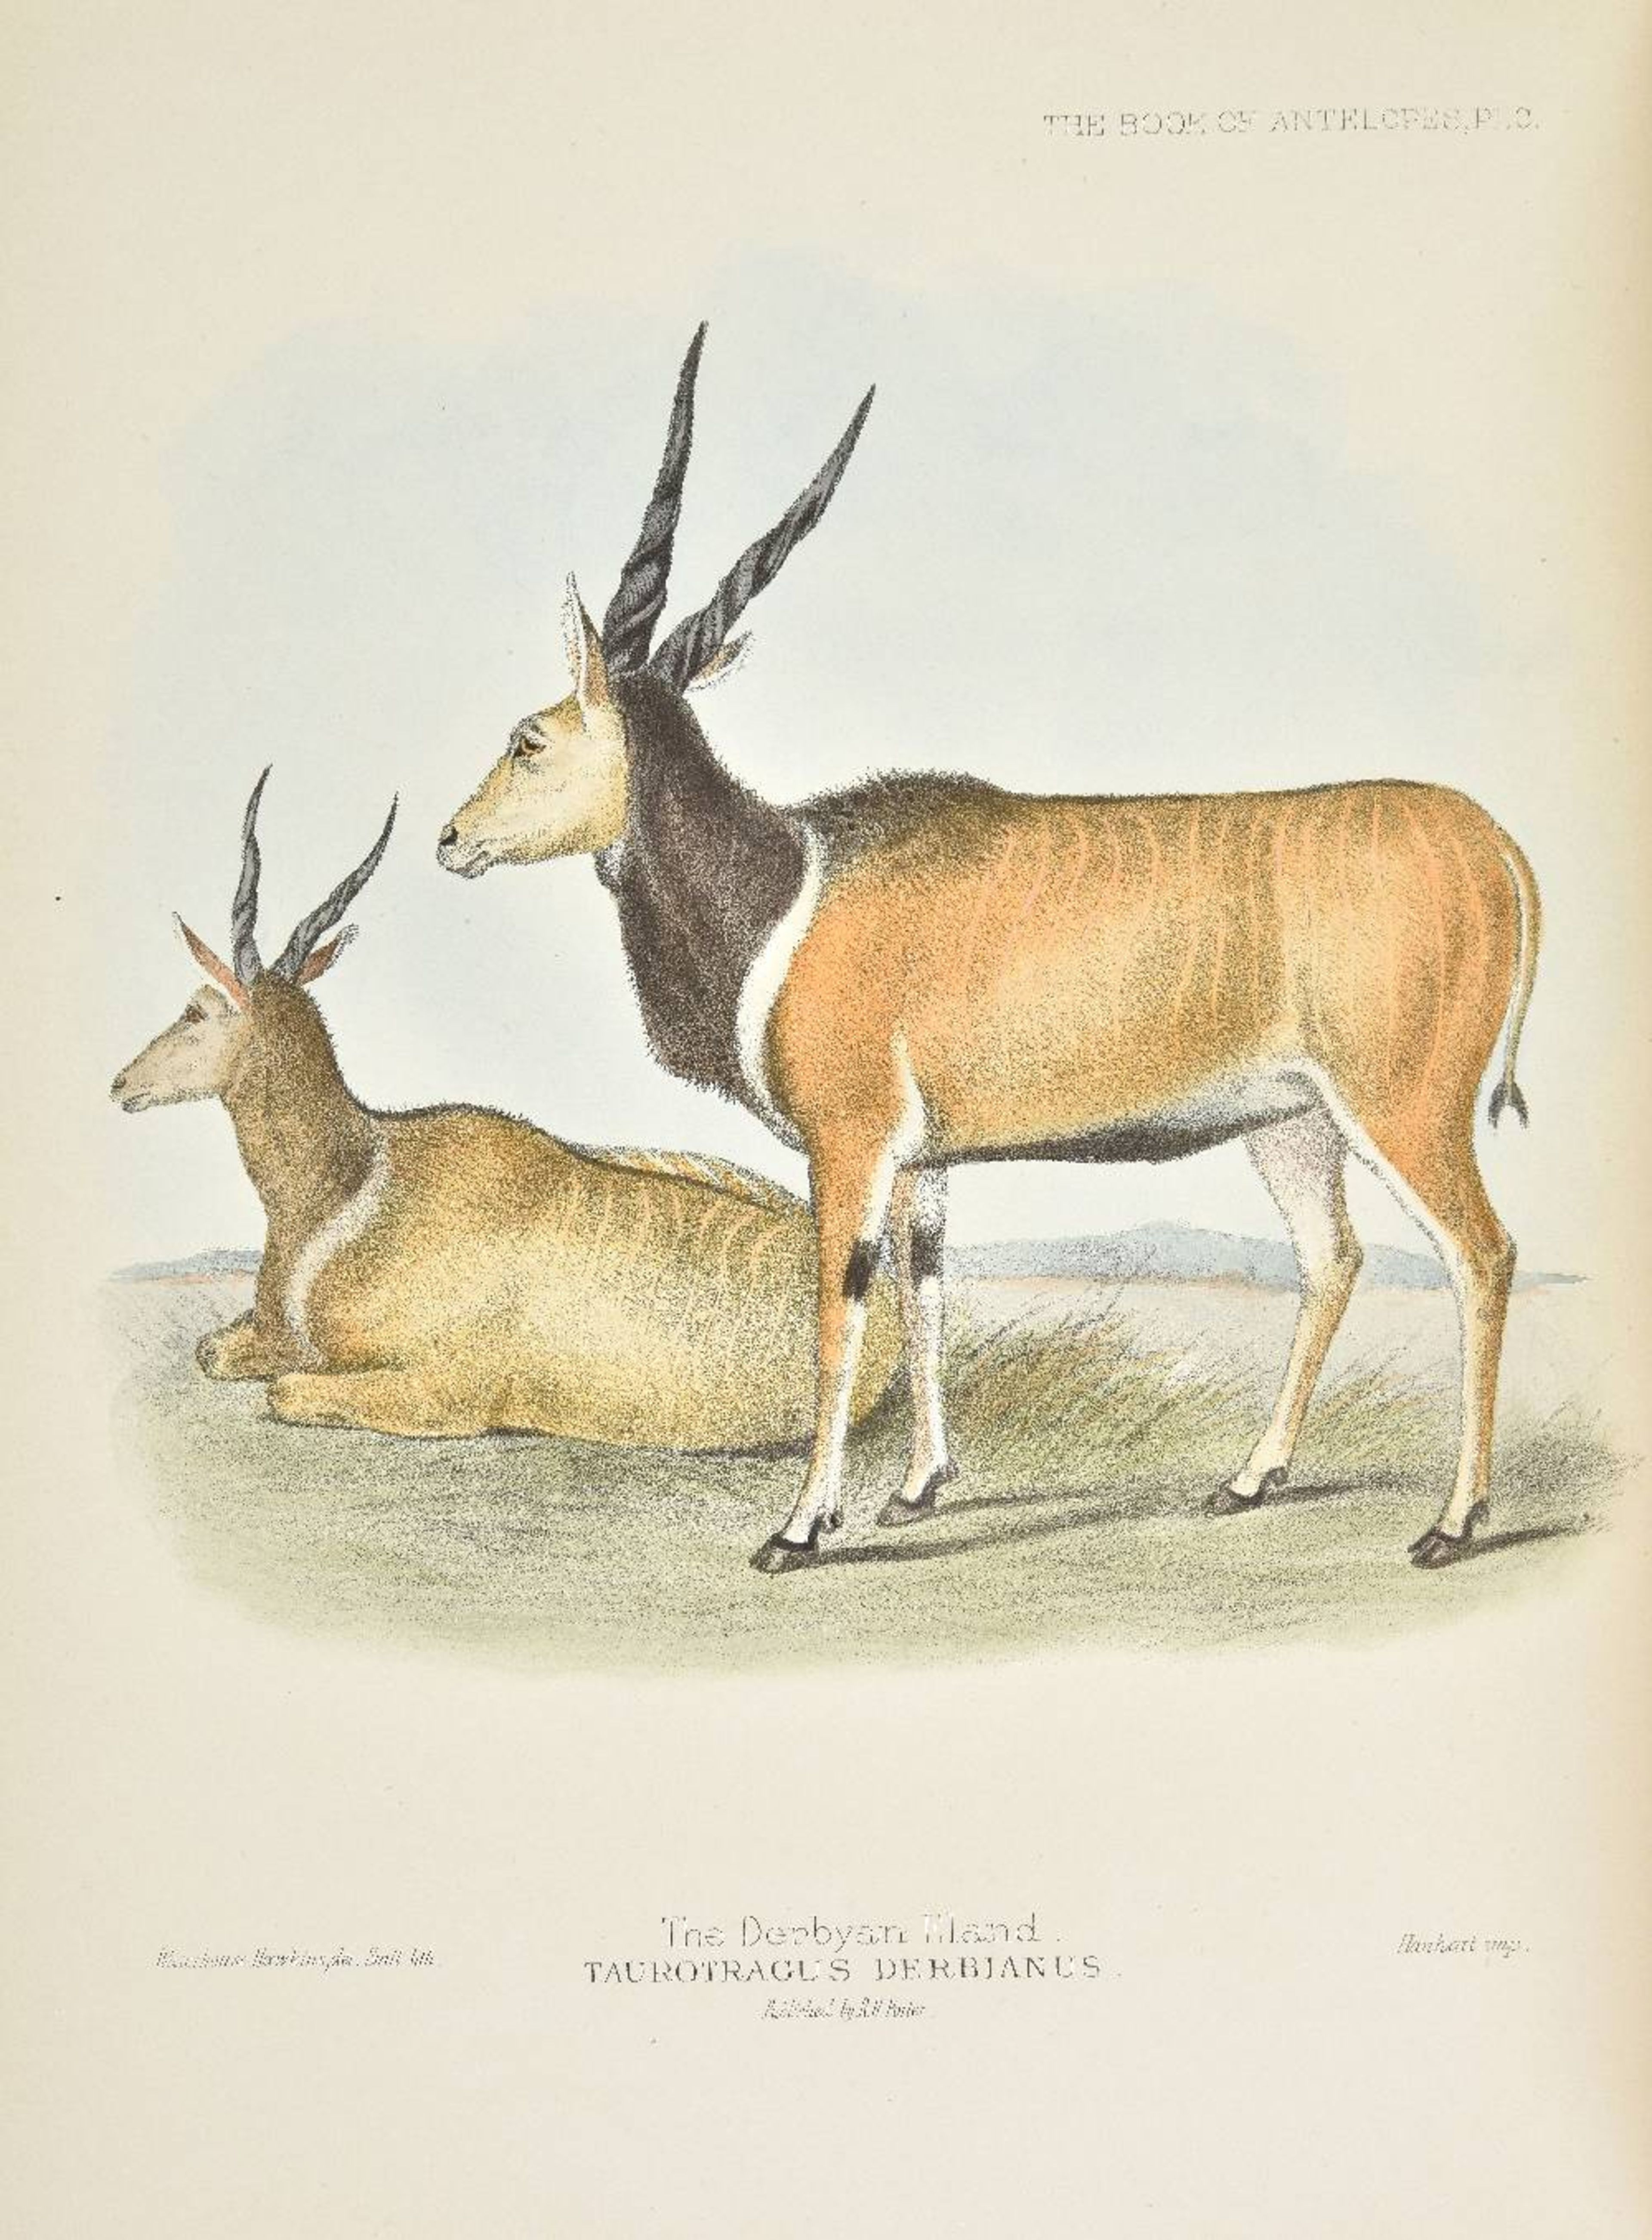 Lot 38 - Sclater (Philip Lutley and Oldfield Thomas). The Book of Antelopes, 4 volumes, 1894-1900, 100 fine